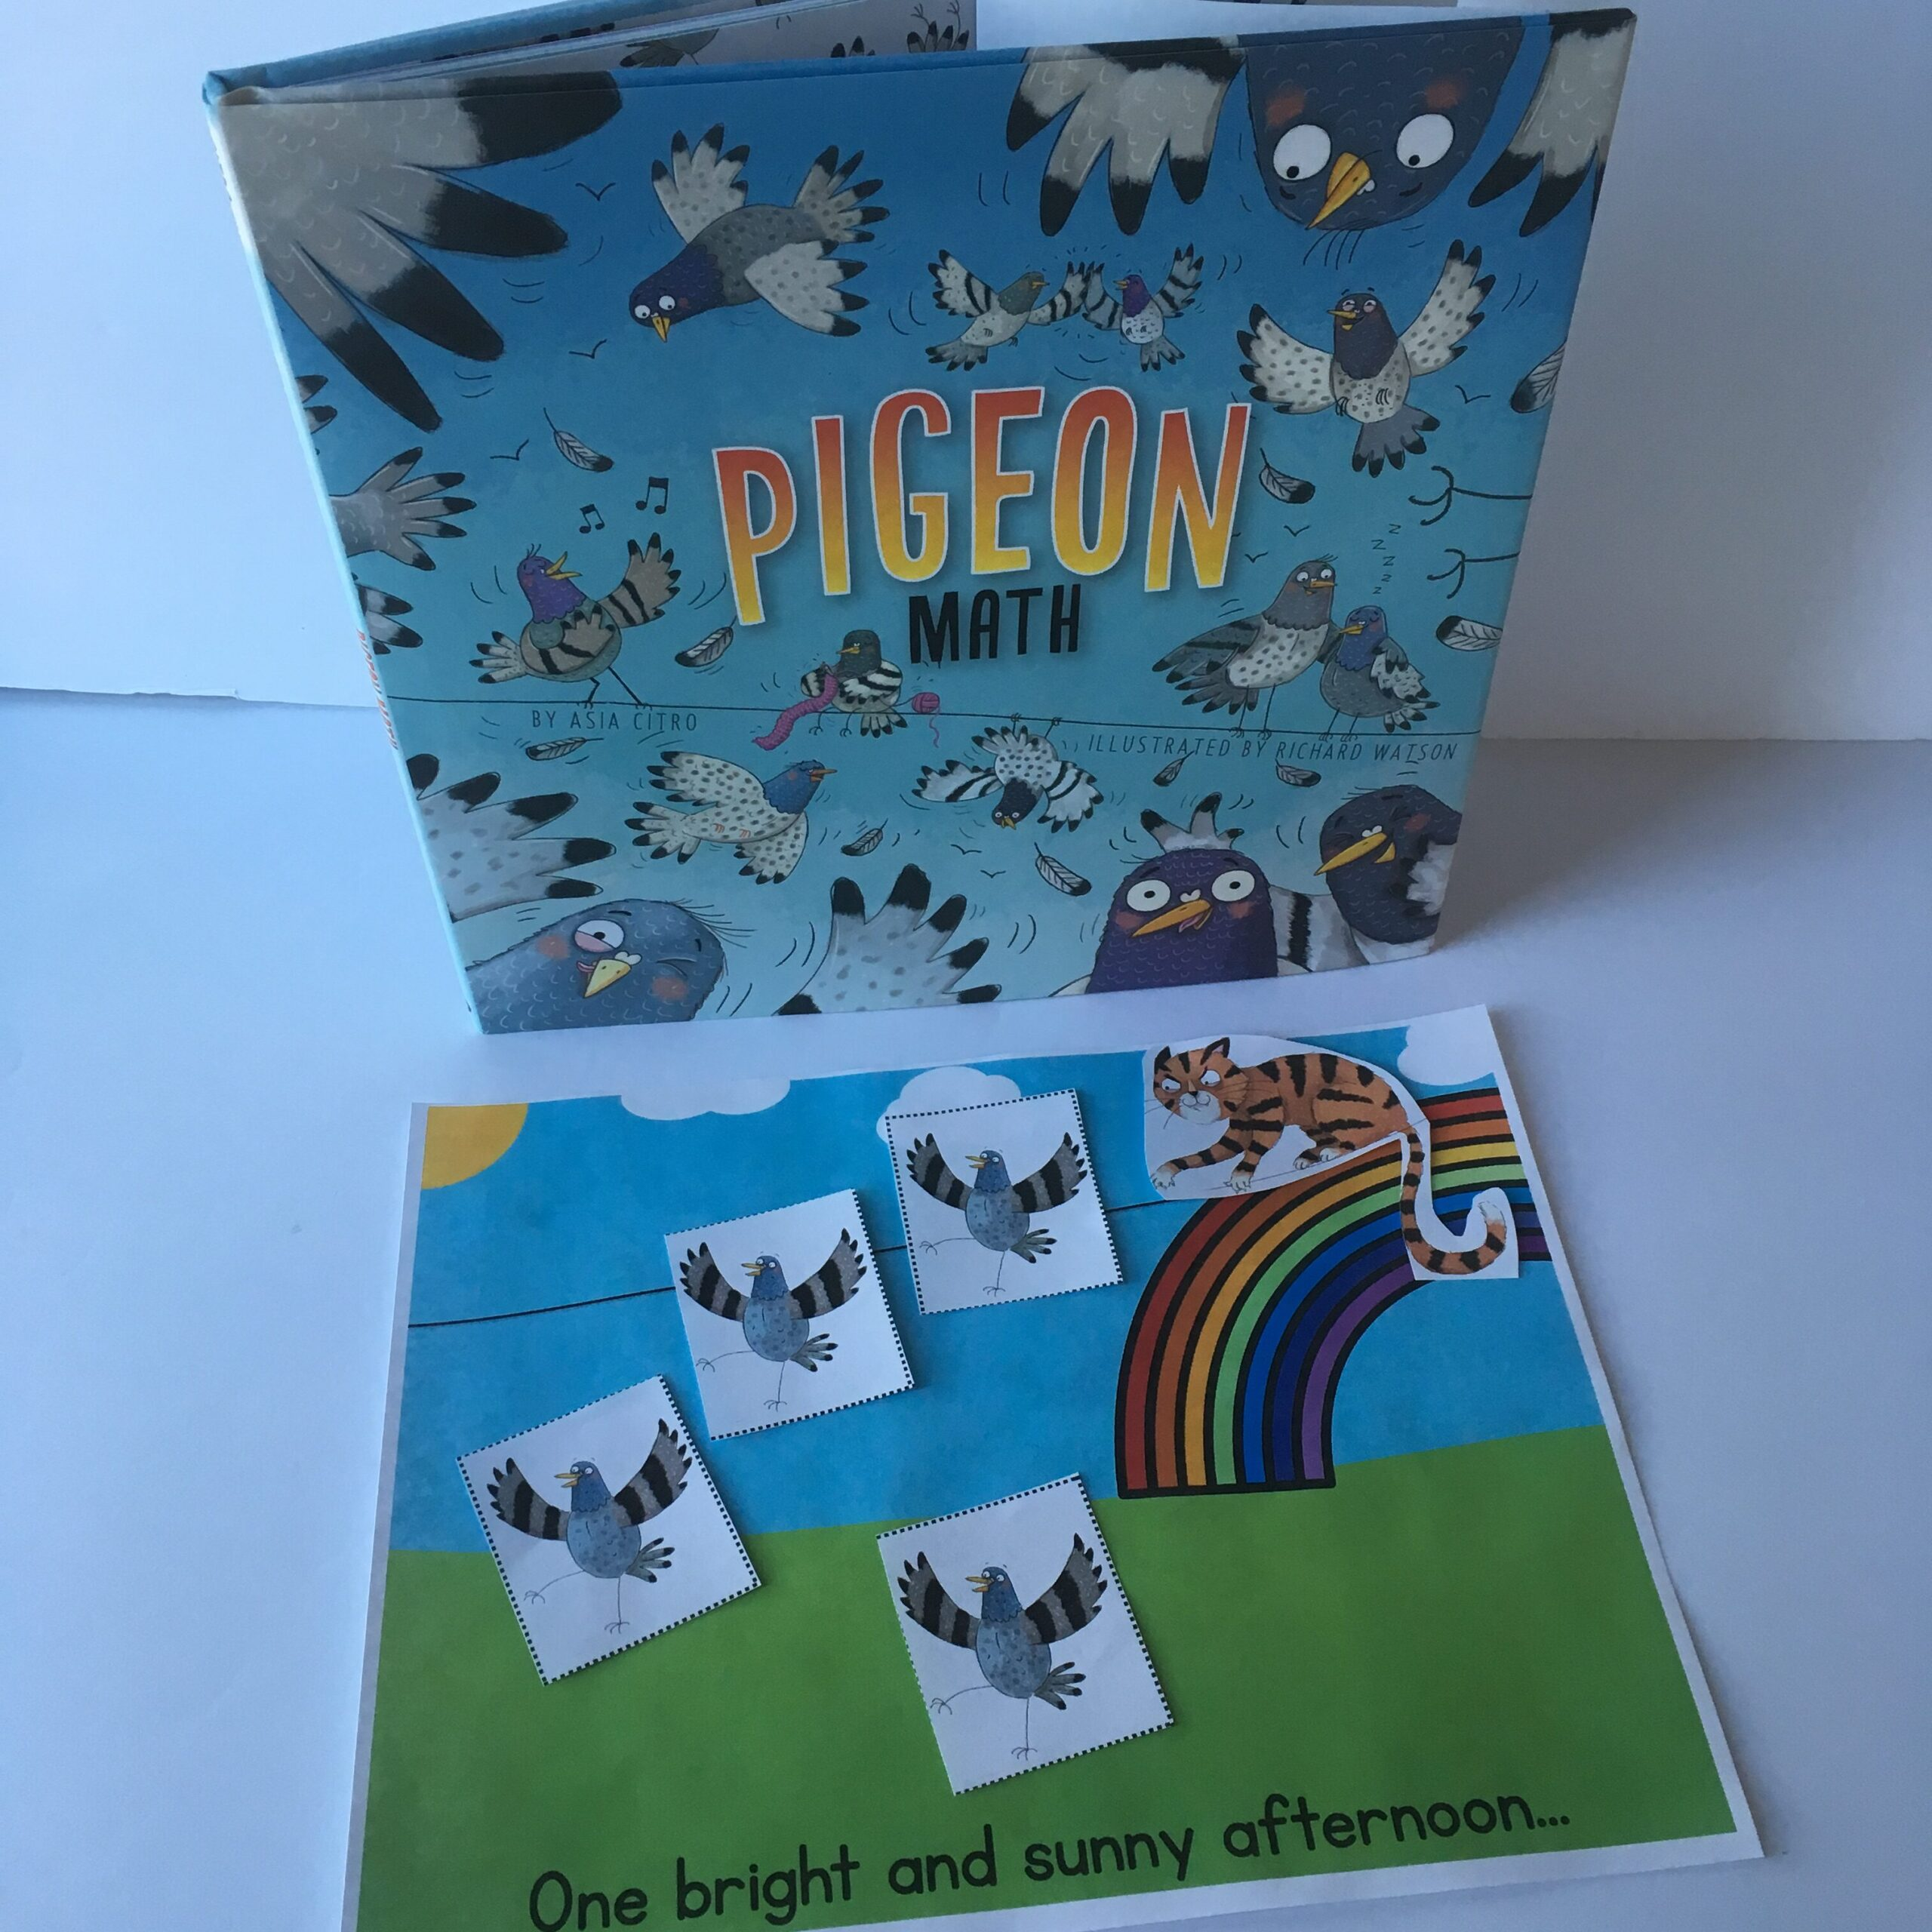 printable activities for Pigeon Math book